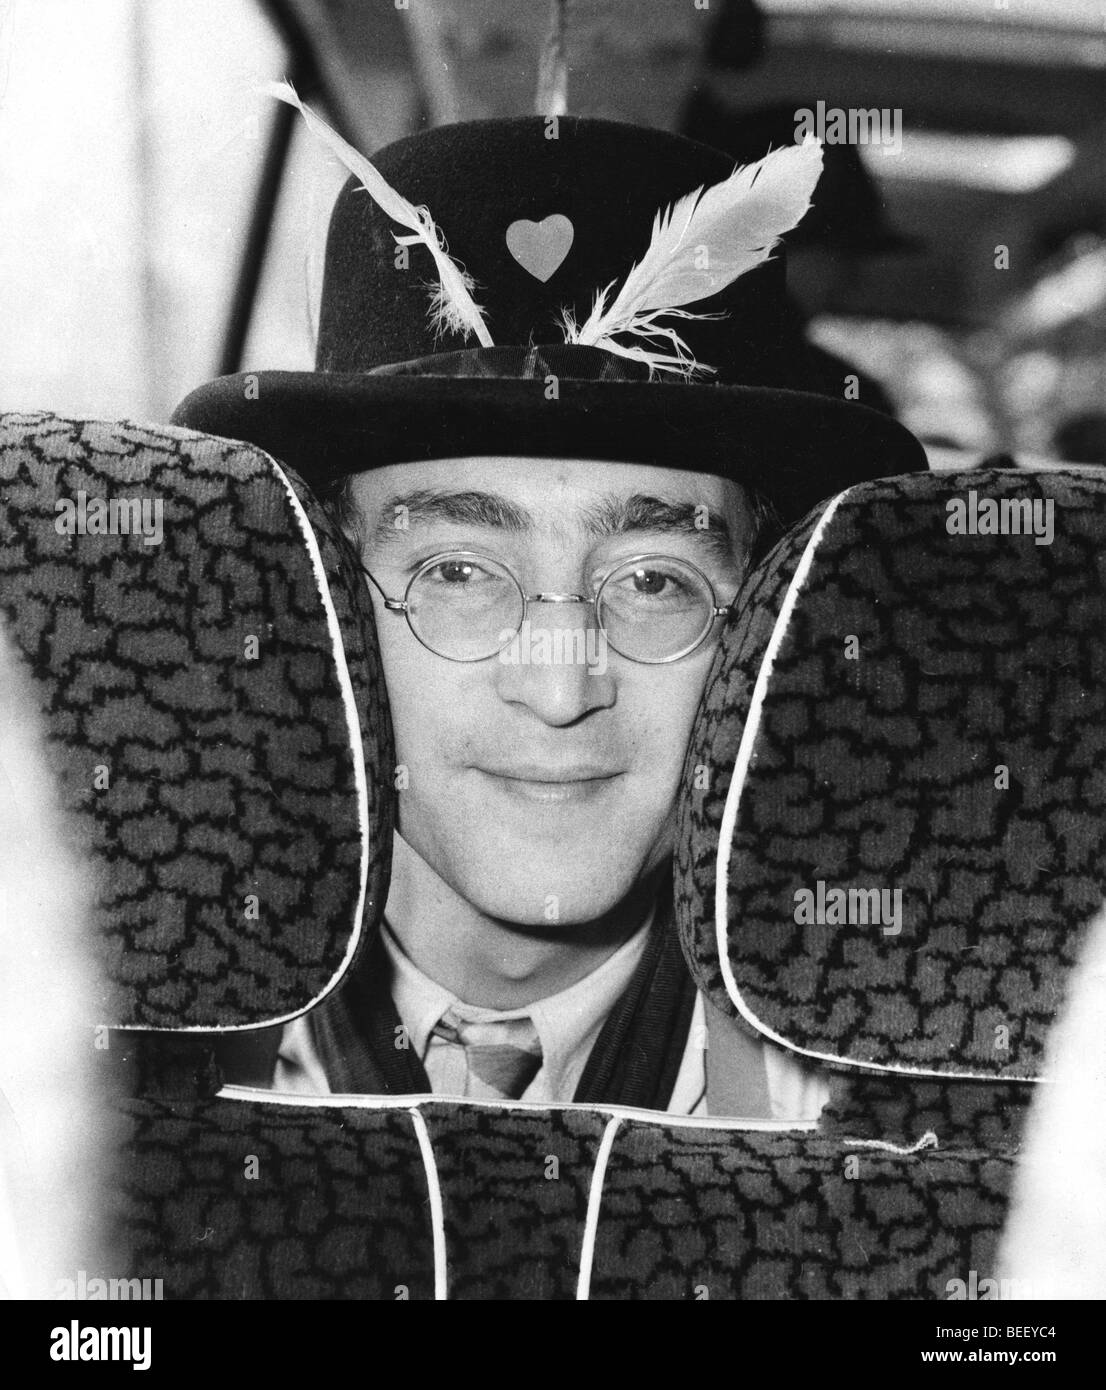 Beatle John Lennon during the Magical Mystery Tour - Stock Image